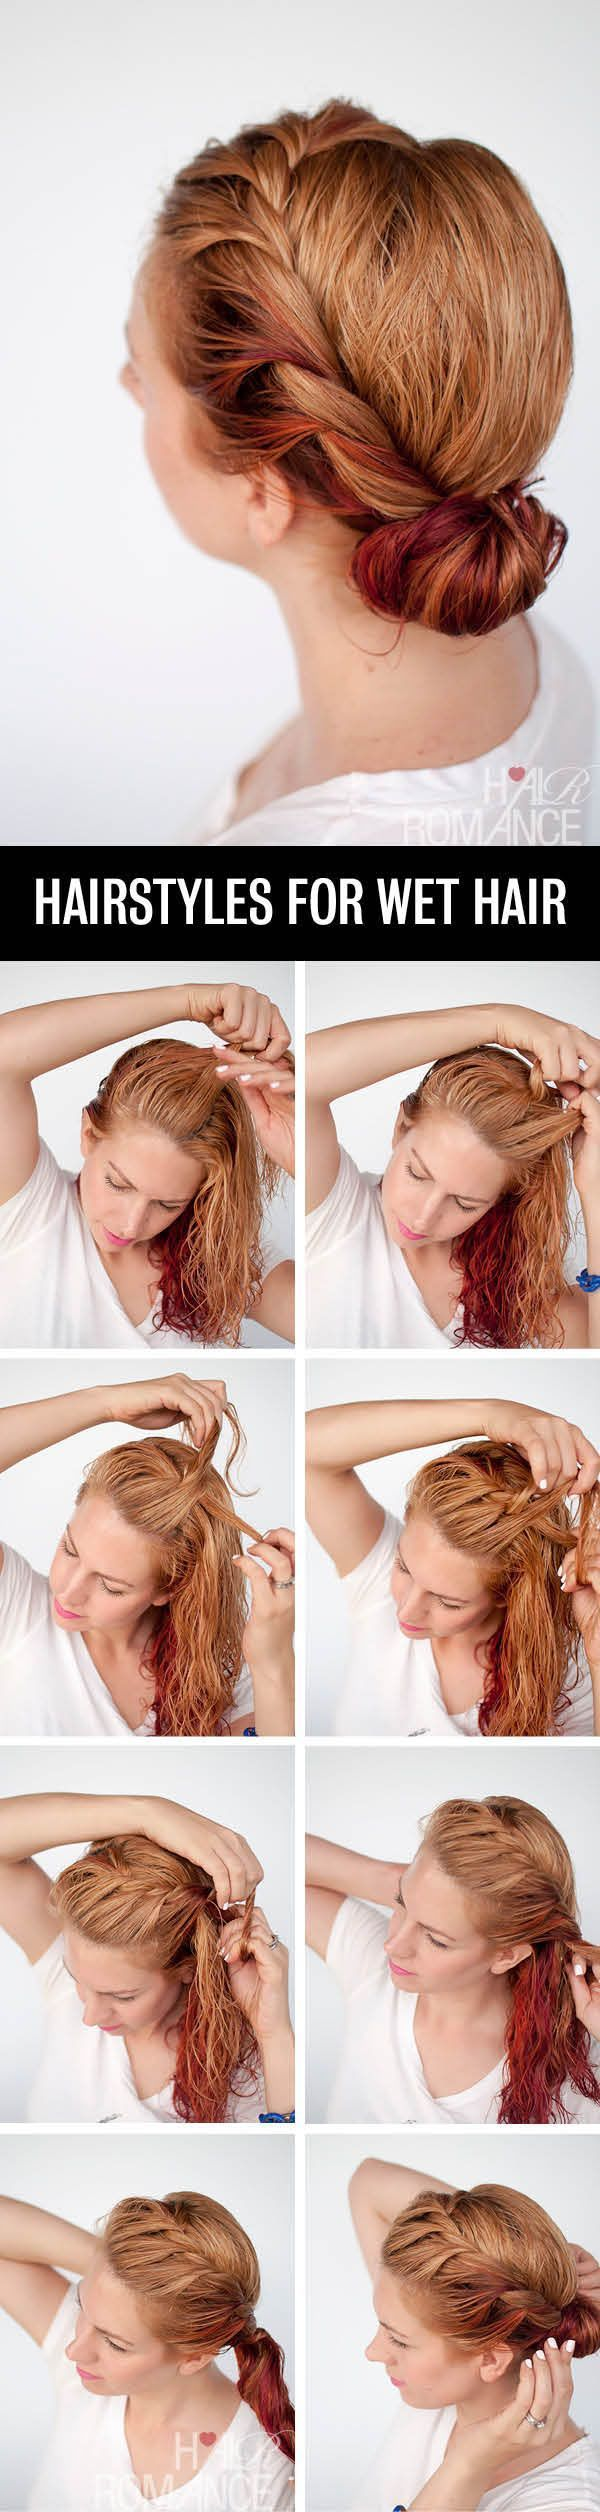 Get ready fast with 7 easy hairstyle tutorials for wet hair (easy hairstyles for long hair mornings)